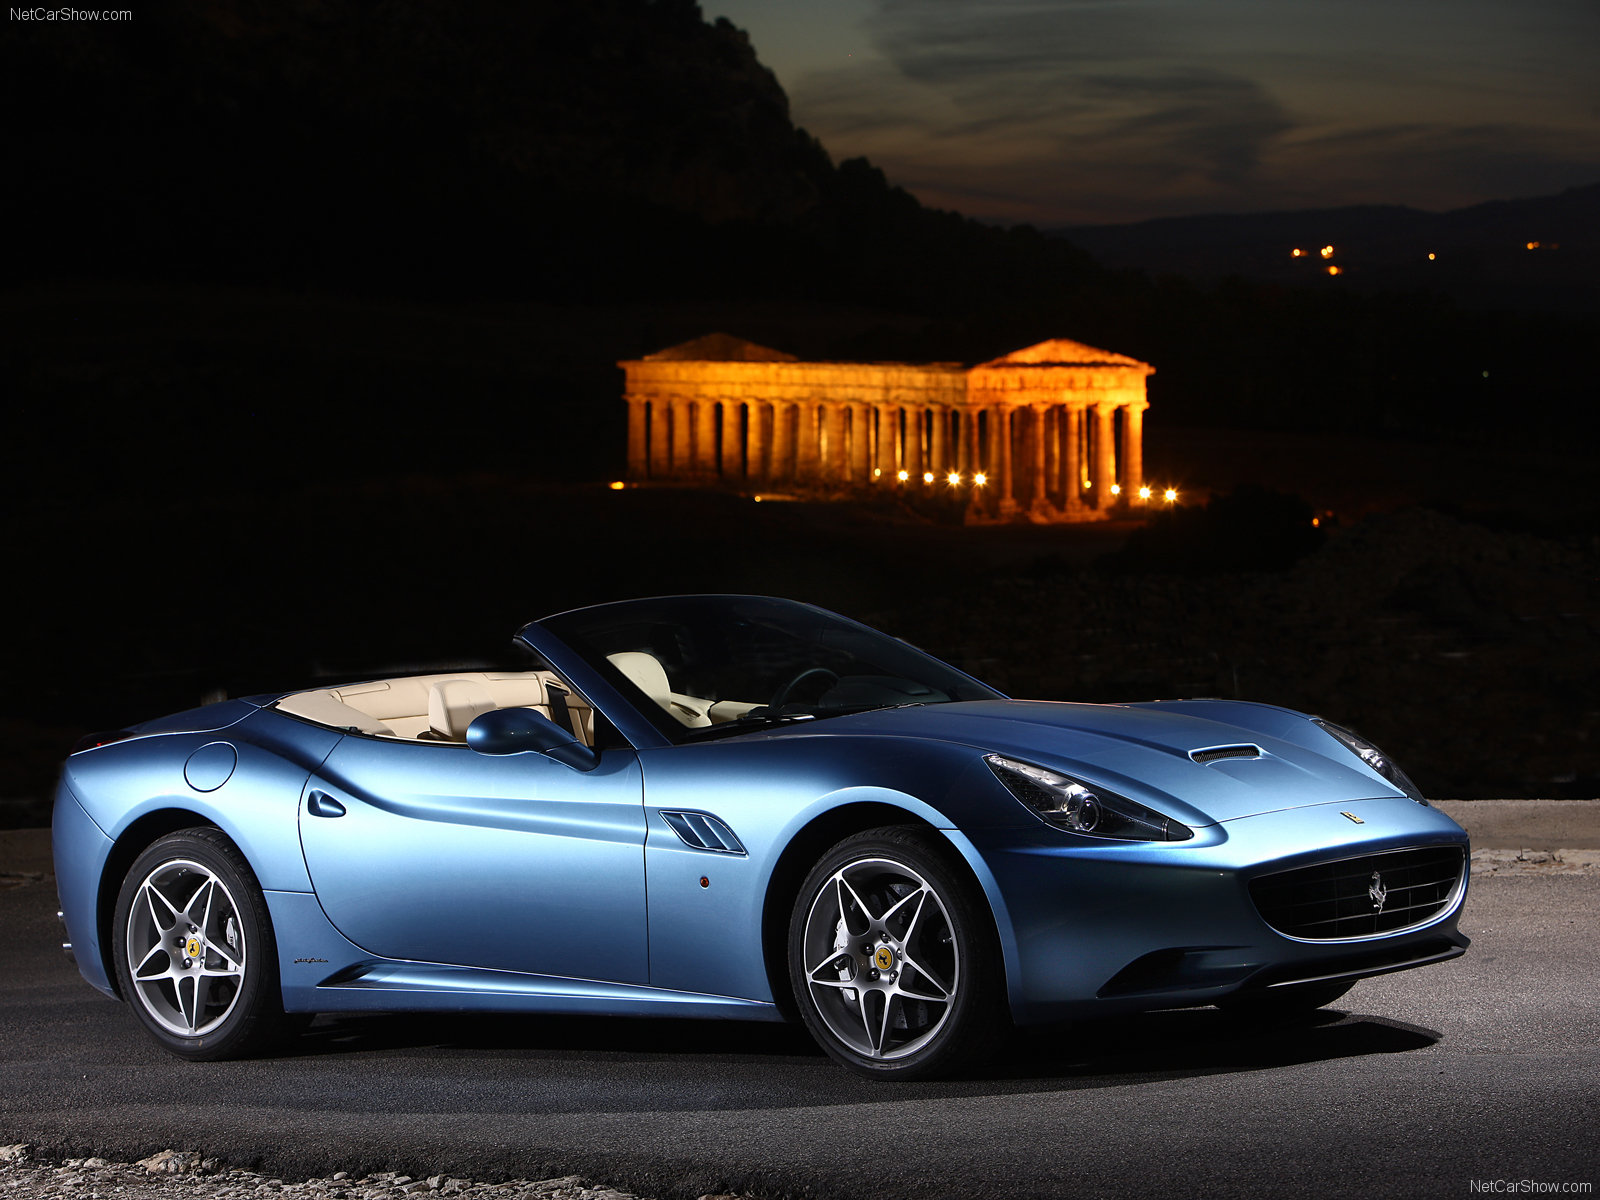 Ferrari-California 2009 1600x1200 wallpaper 008